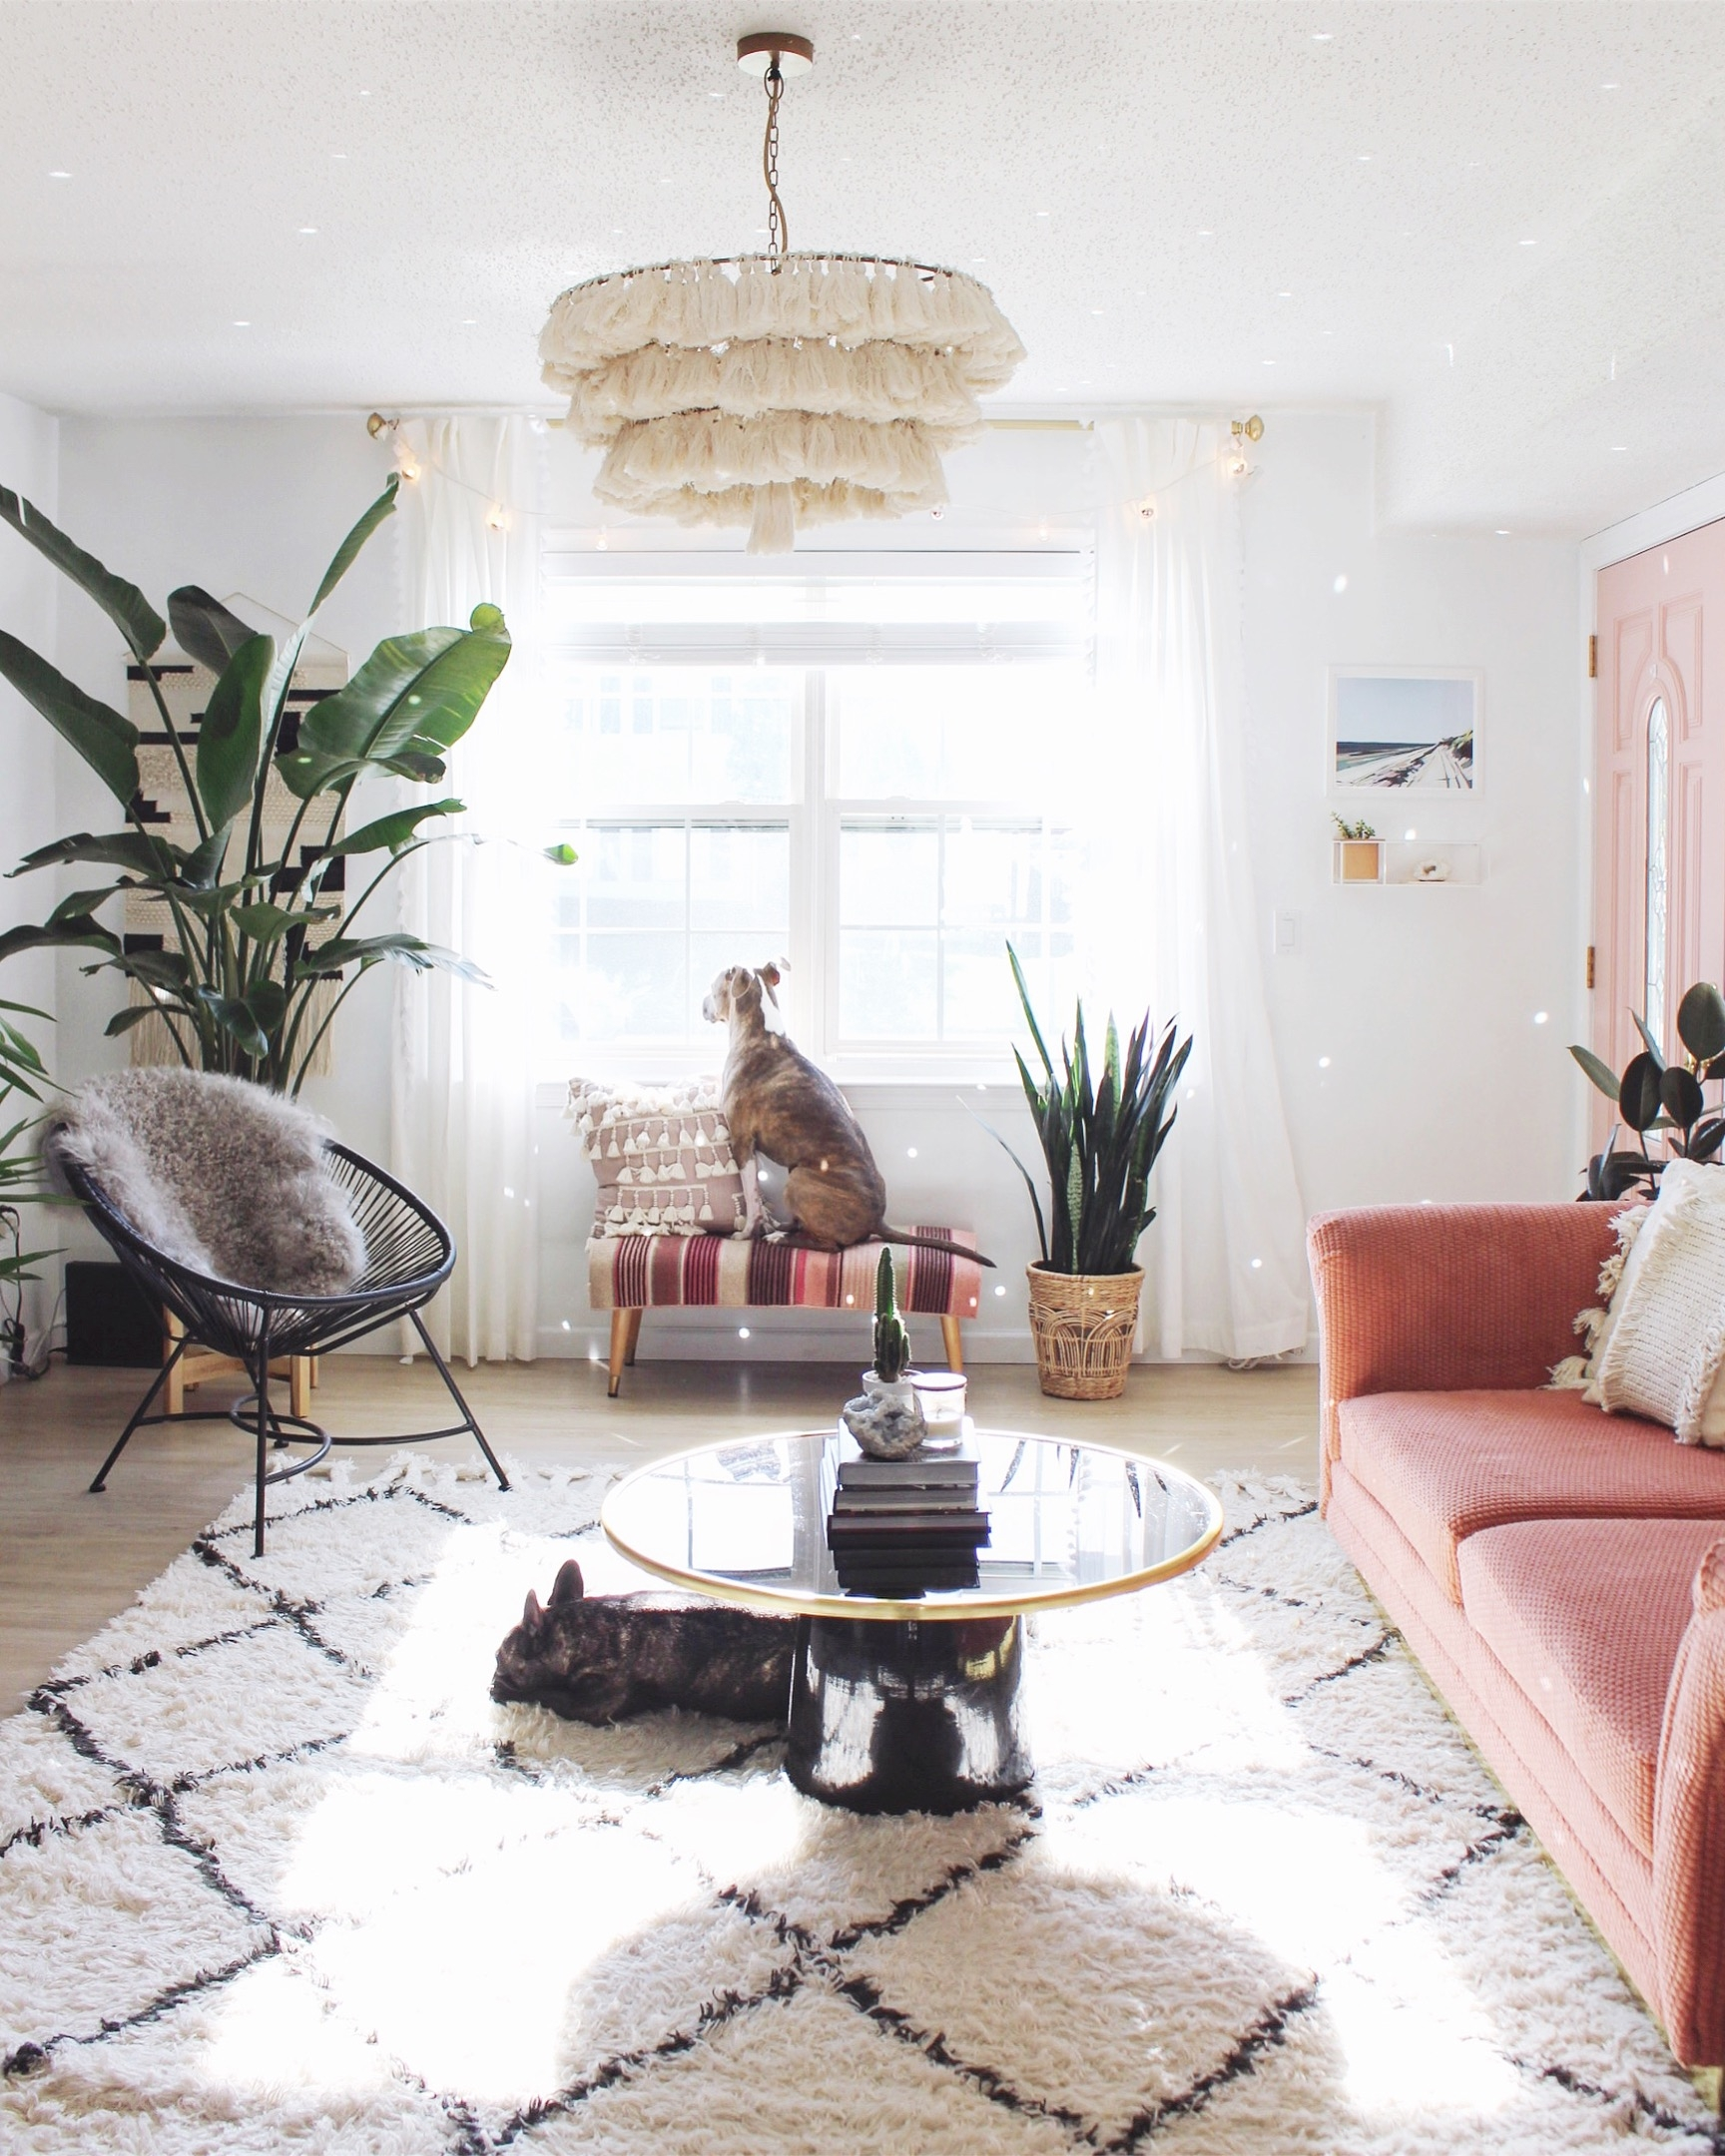 Pet Friendly Home Decor: Pet Friendly Rugs And Tips With Rugs